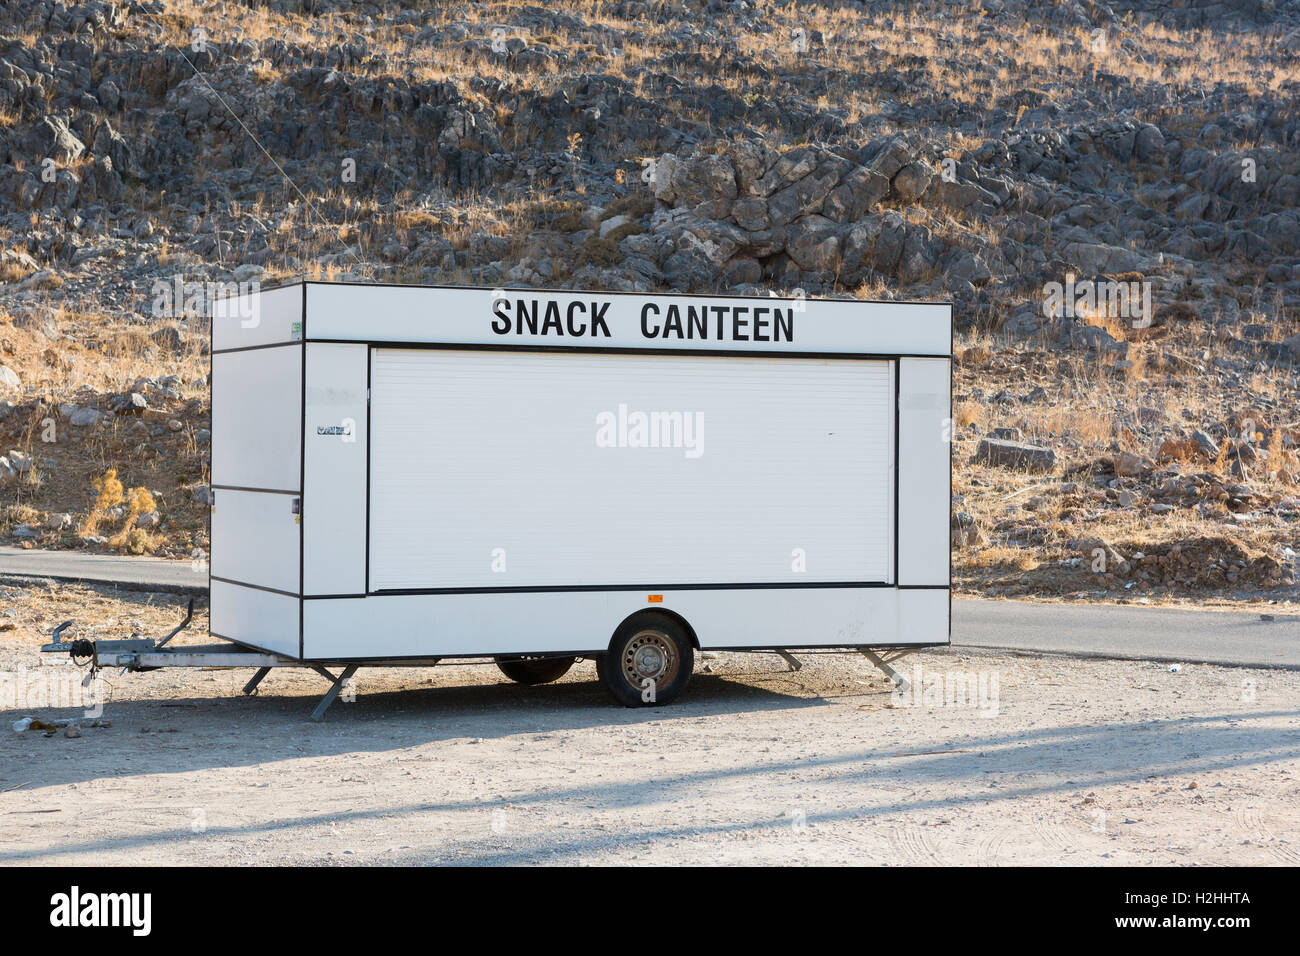 A mobile snack canteen - Stock Image